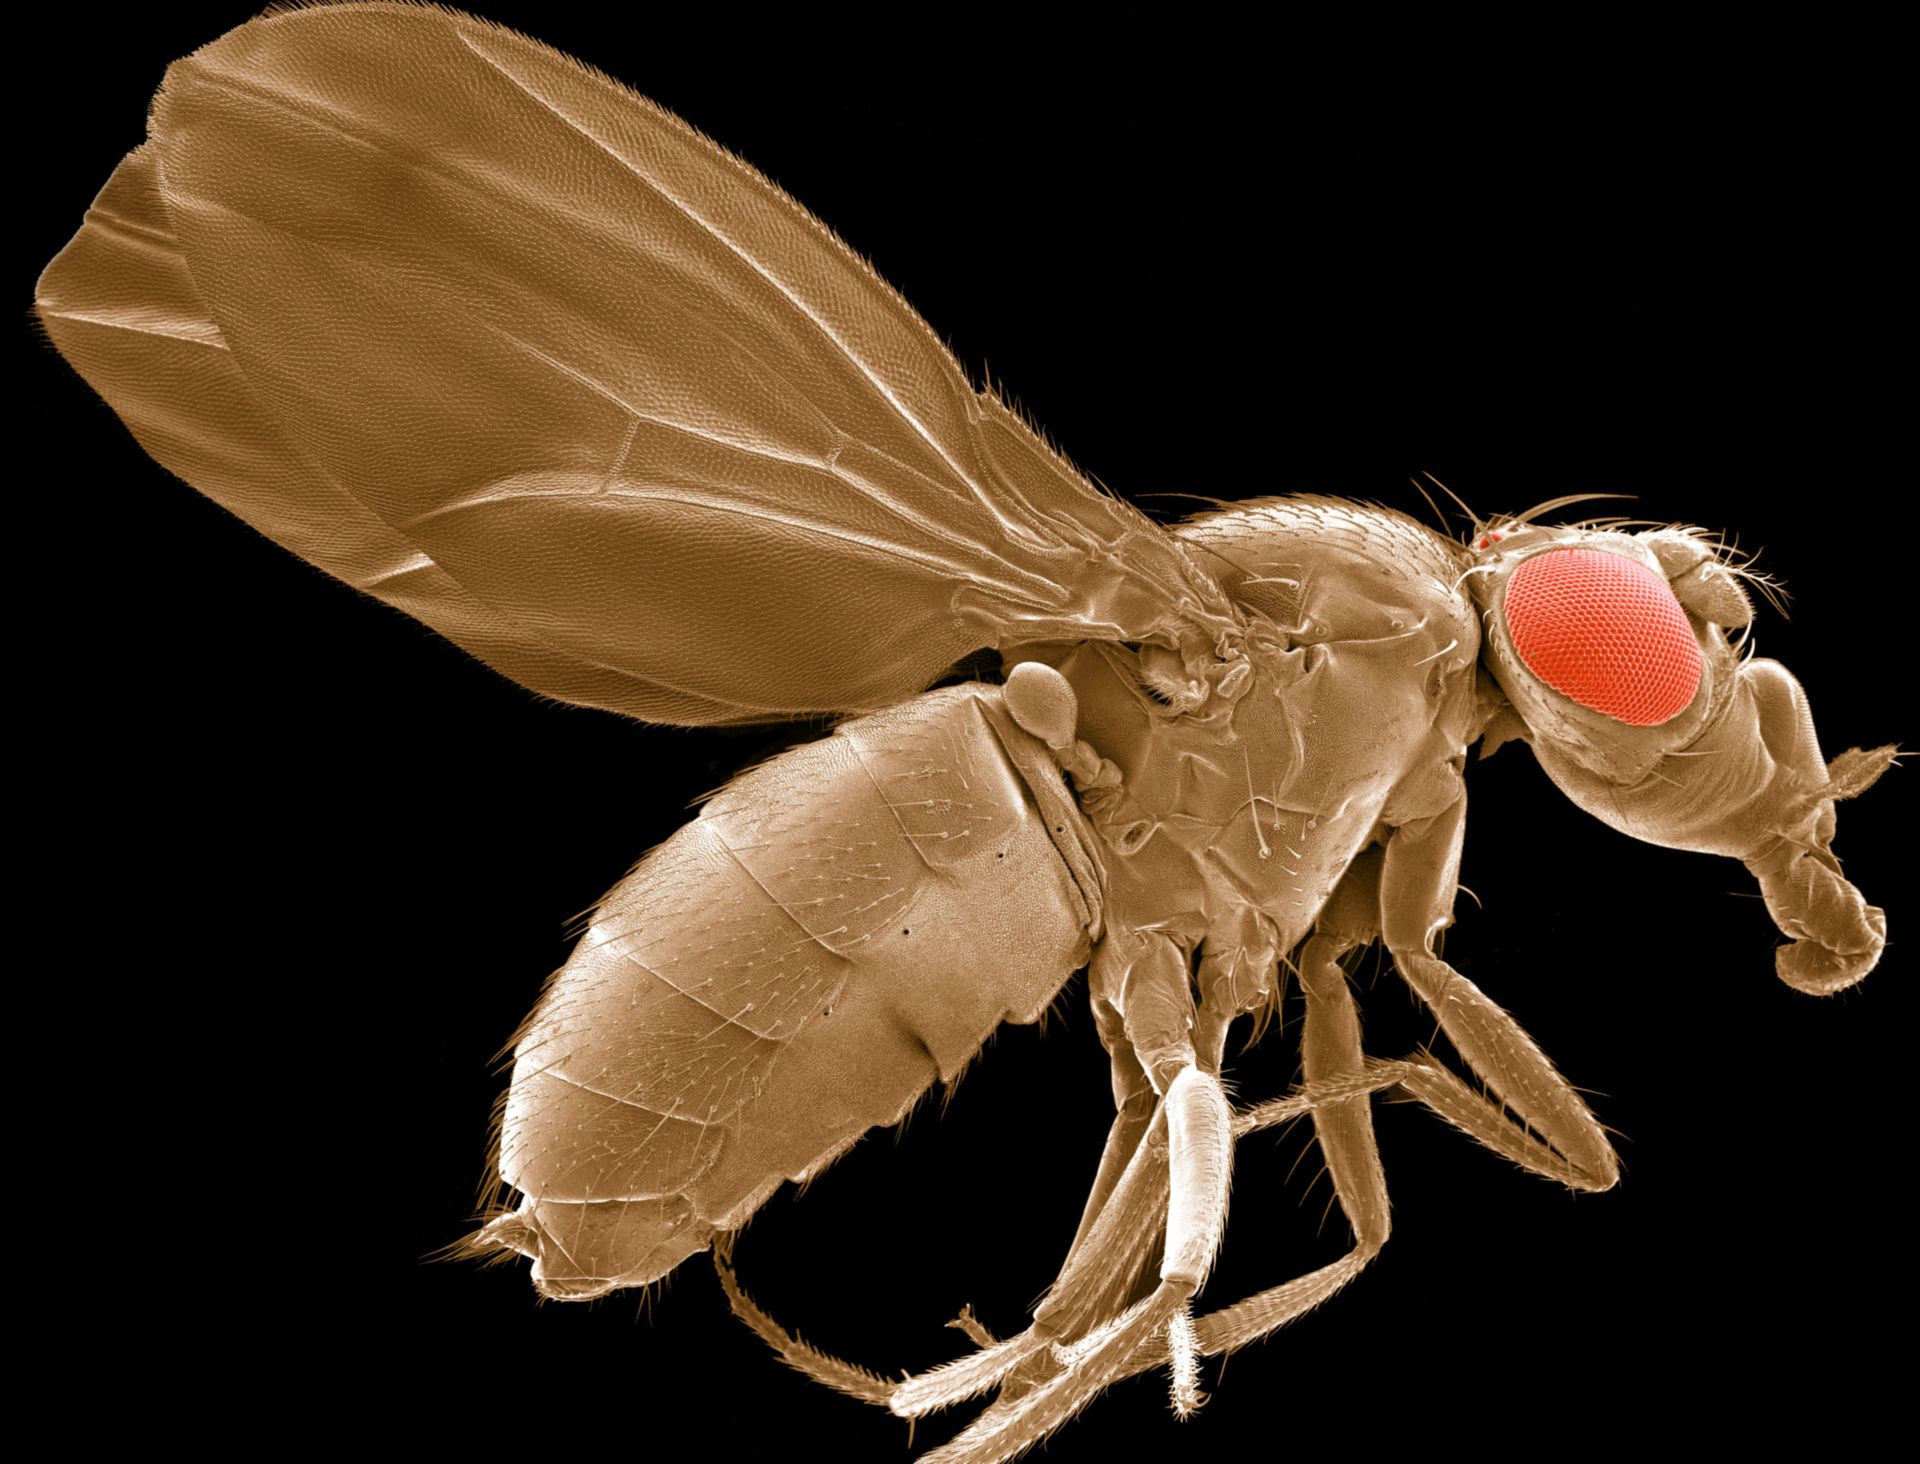 Flies, Zebrafish, and Nematodes, Oh My! CIL:39726 - http://cellimagelibrary.org/images/39726